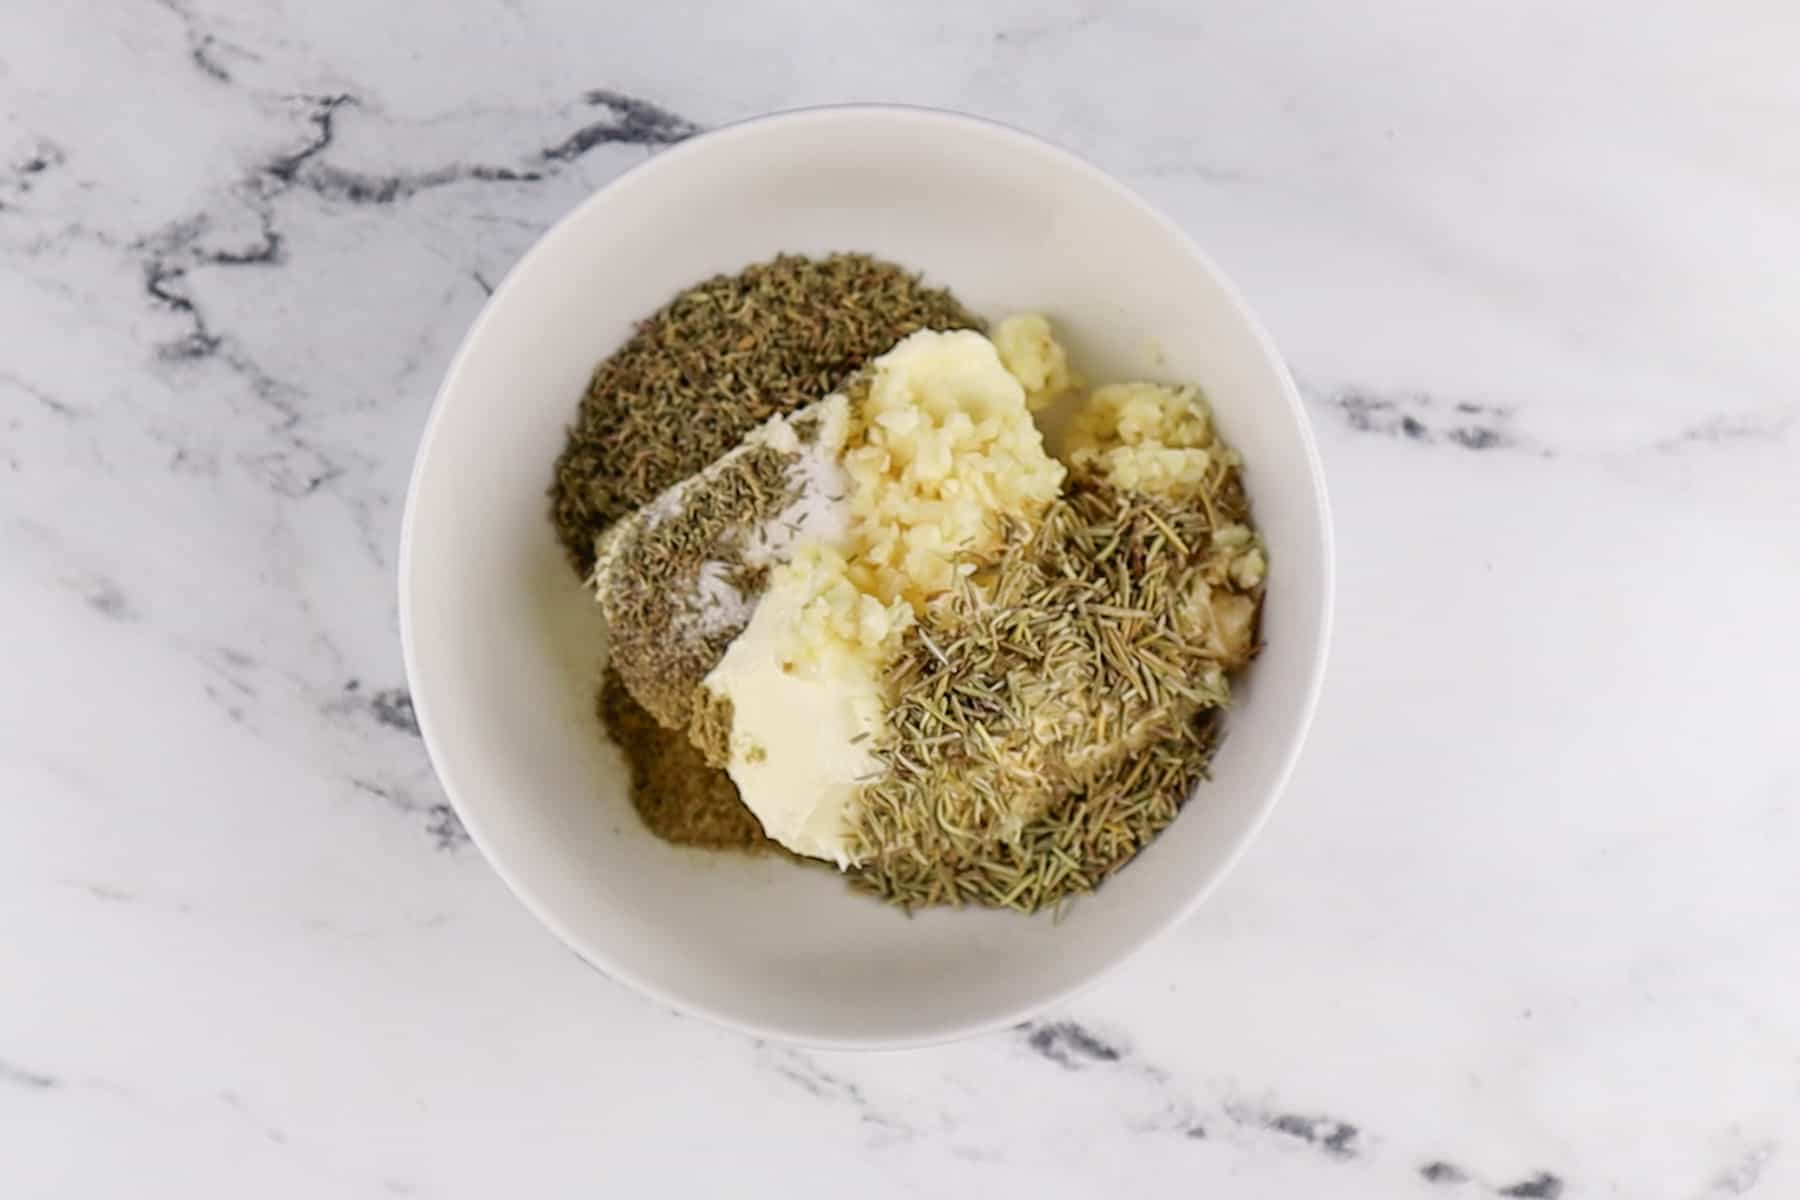 butter and herbs in bowl before mixing